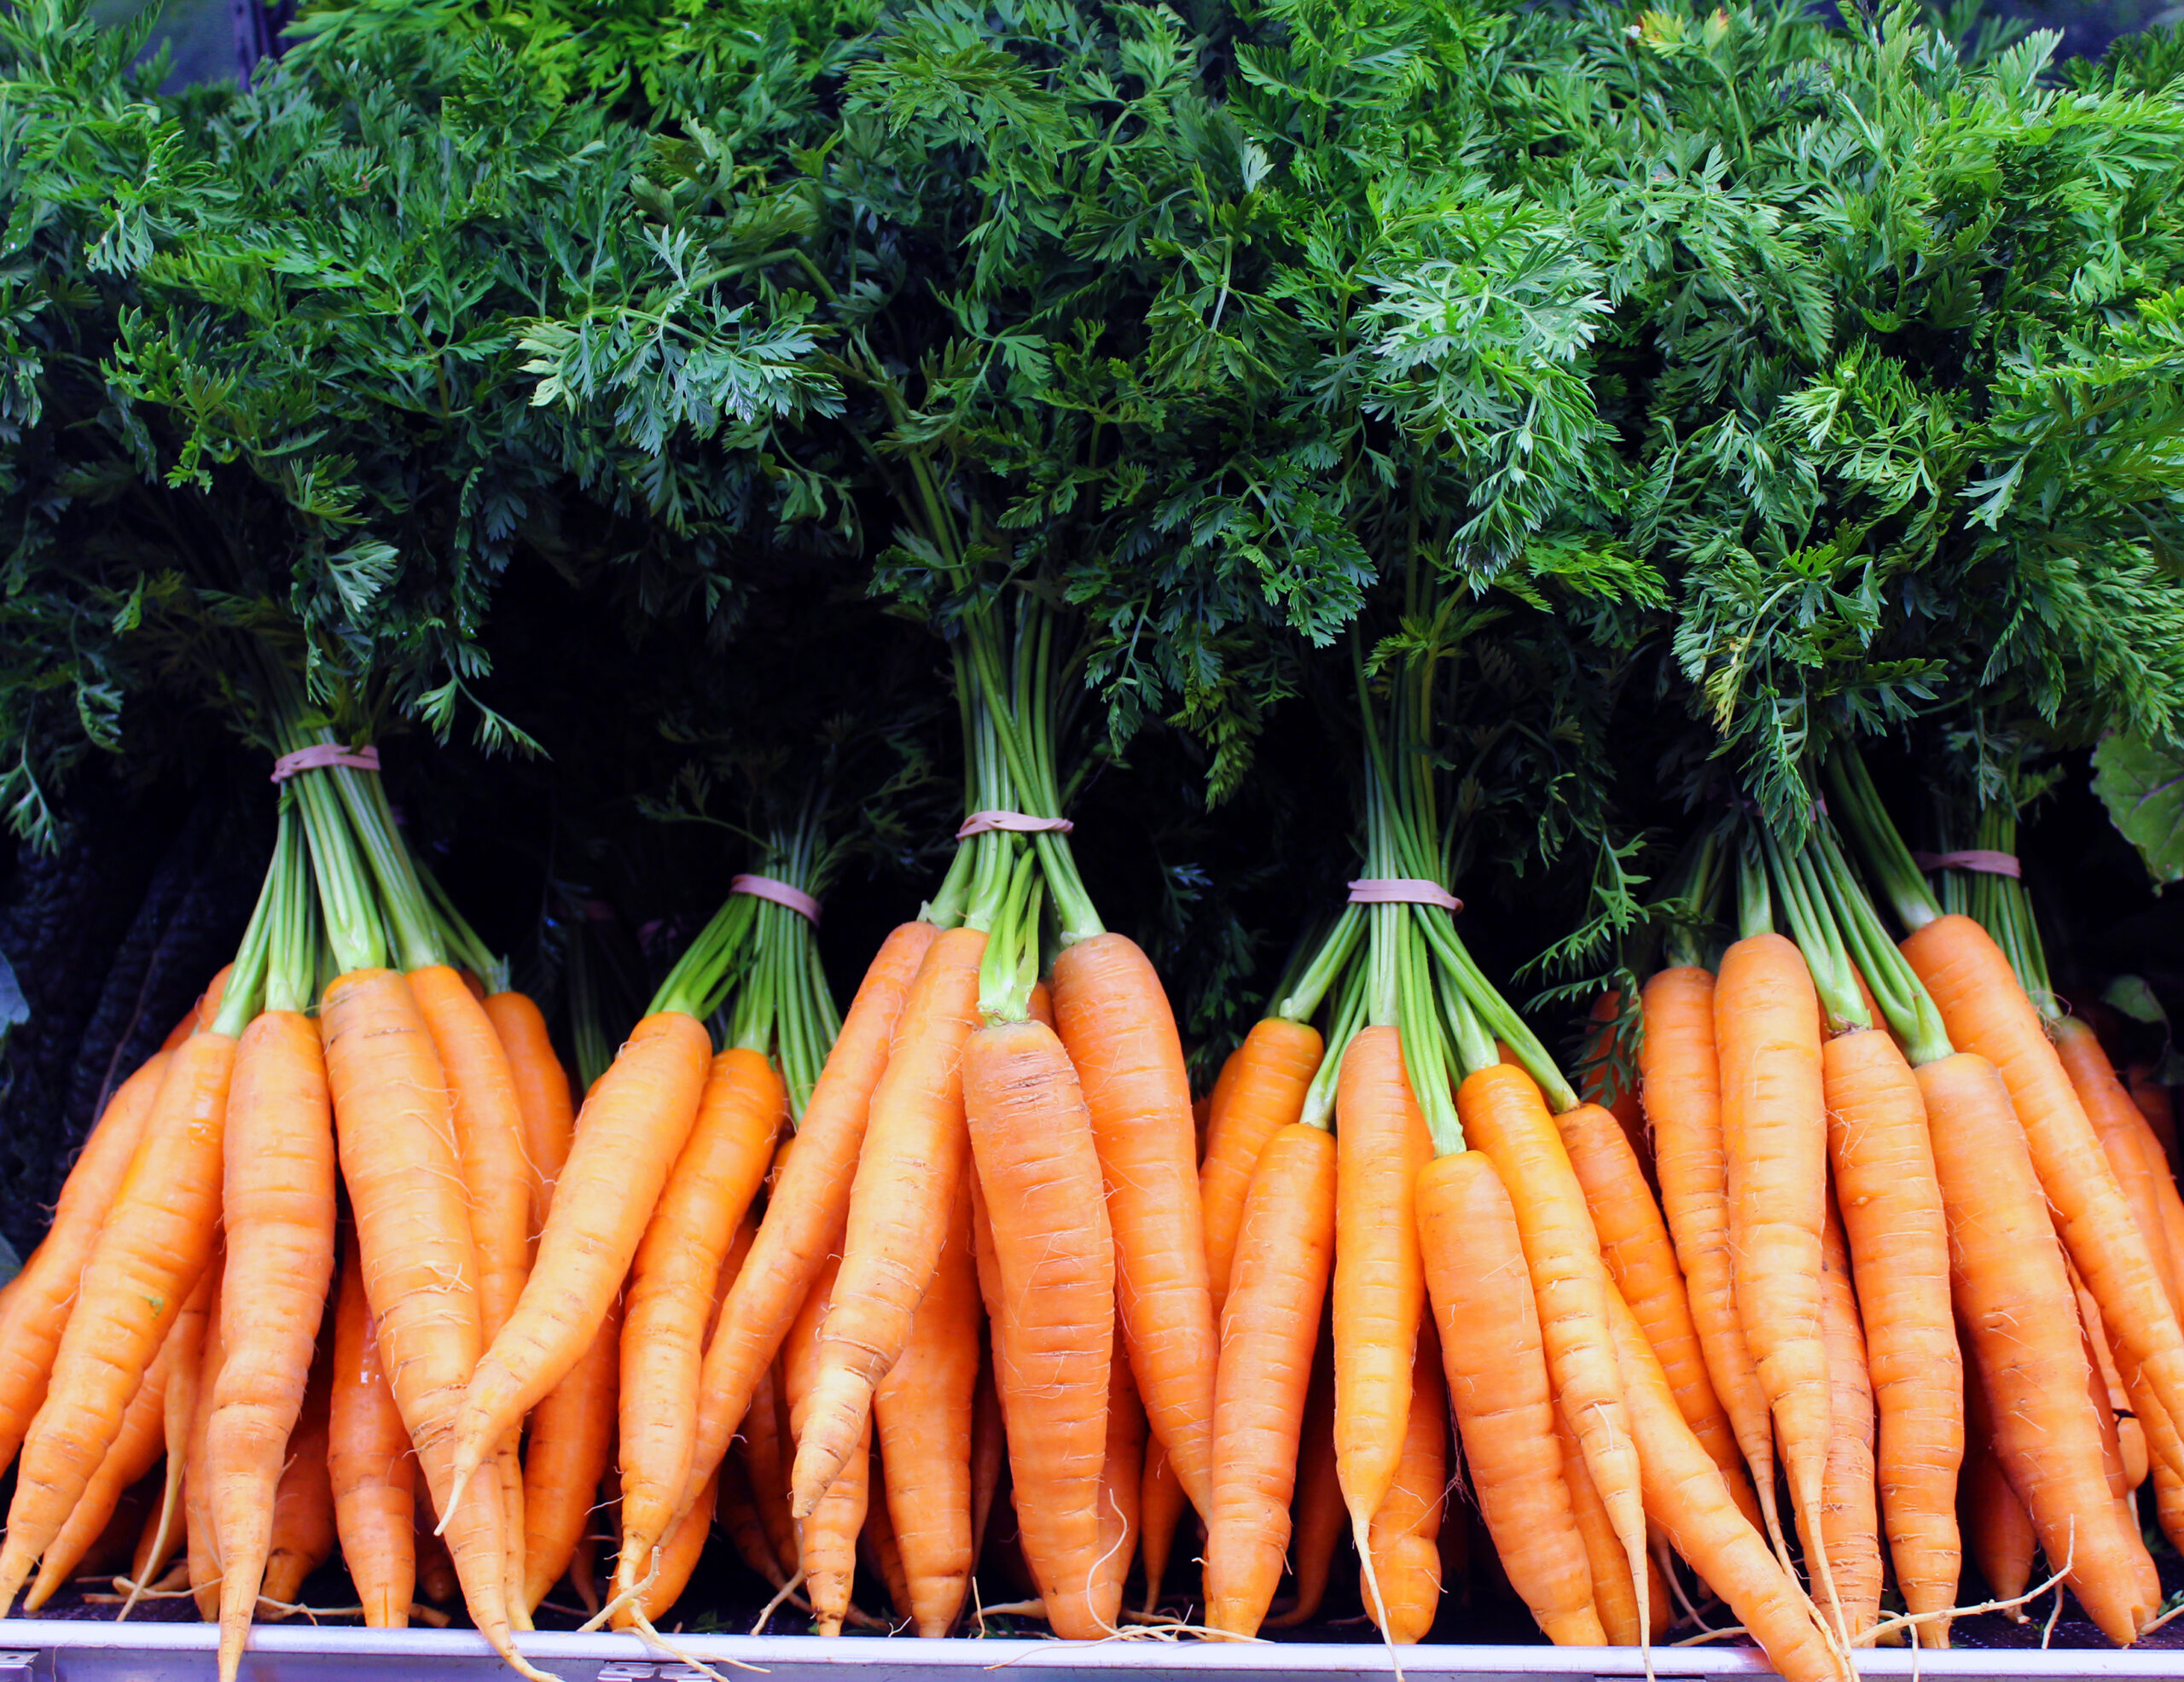 carrots-in-store-7-18-15